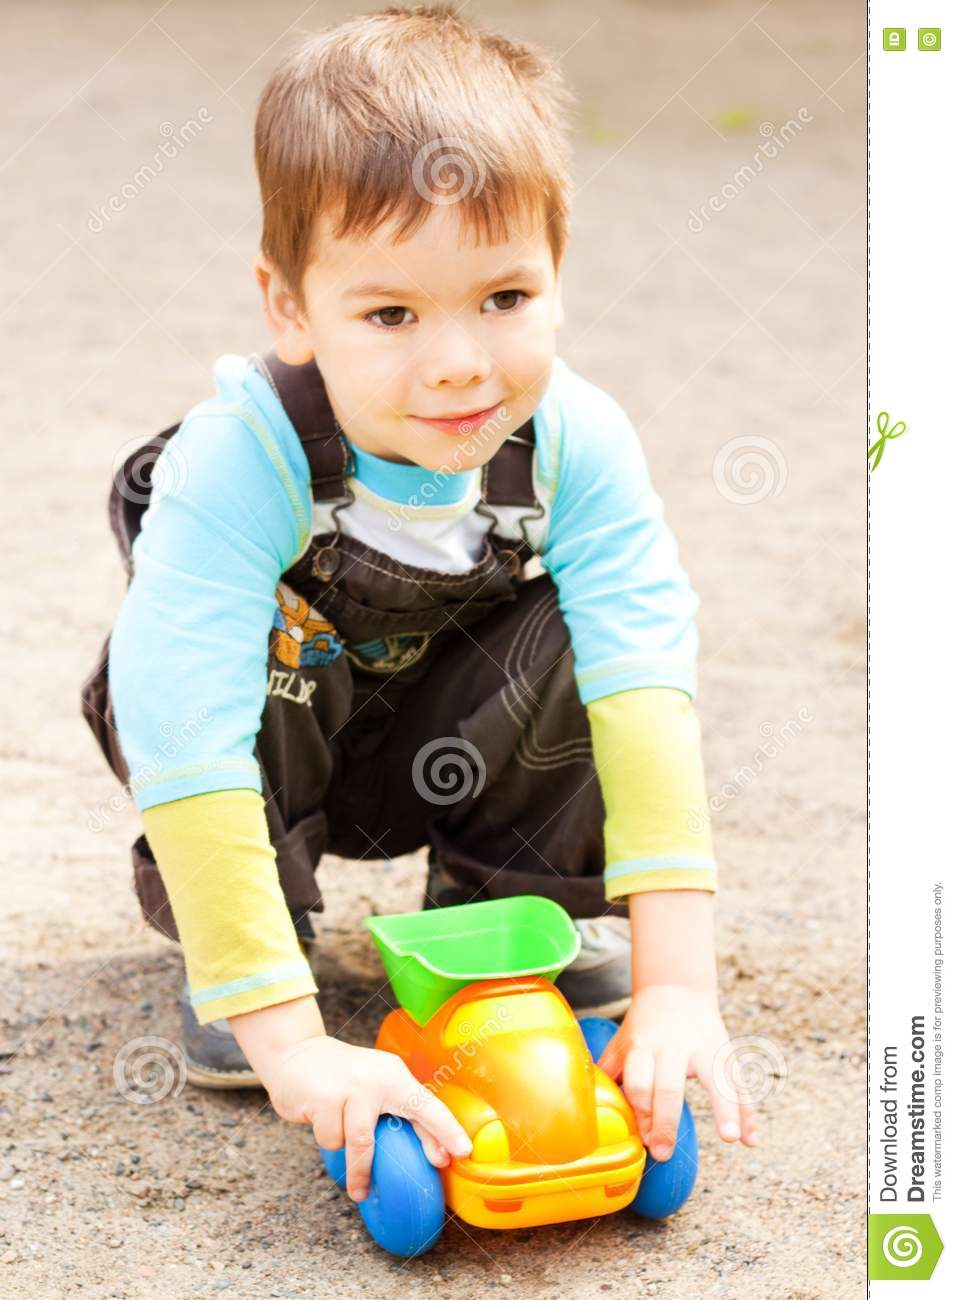 Little Boy With Toy Car : Little boy playing in the toy car stock image